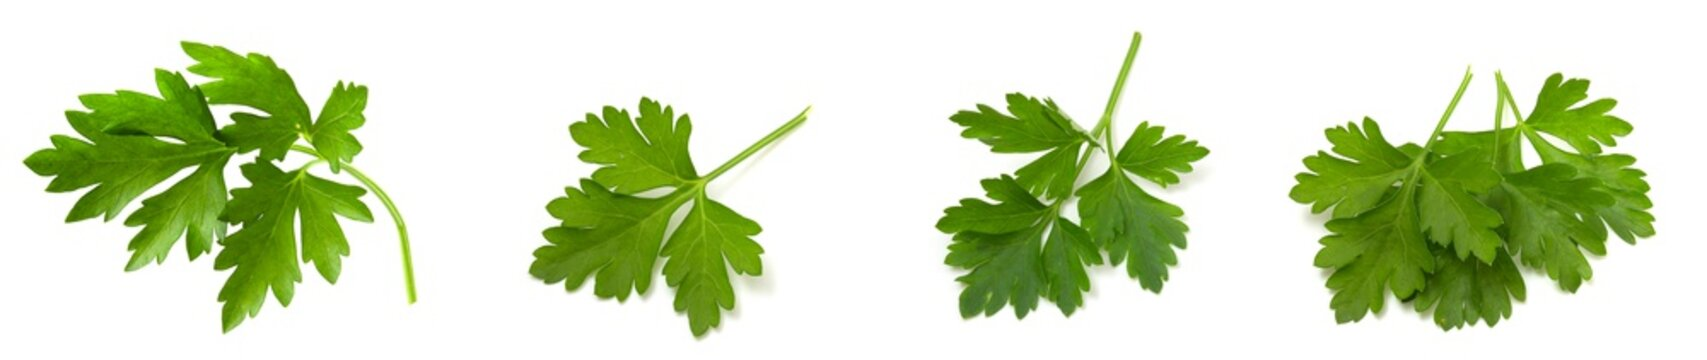 Fresh vegetarian greens, fragrant parsley with vitamins isolated on white background.